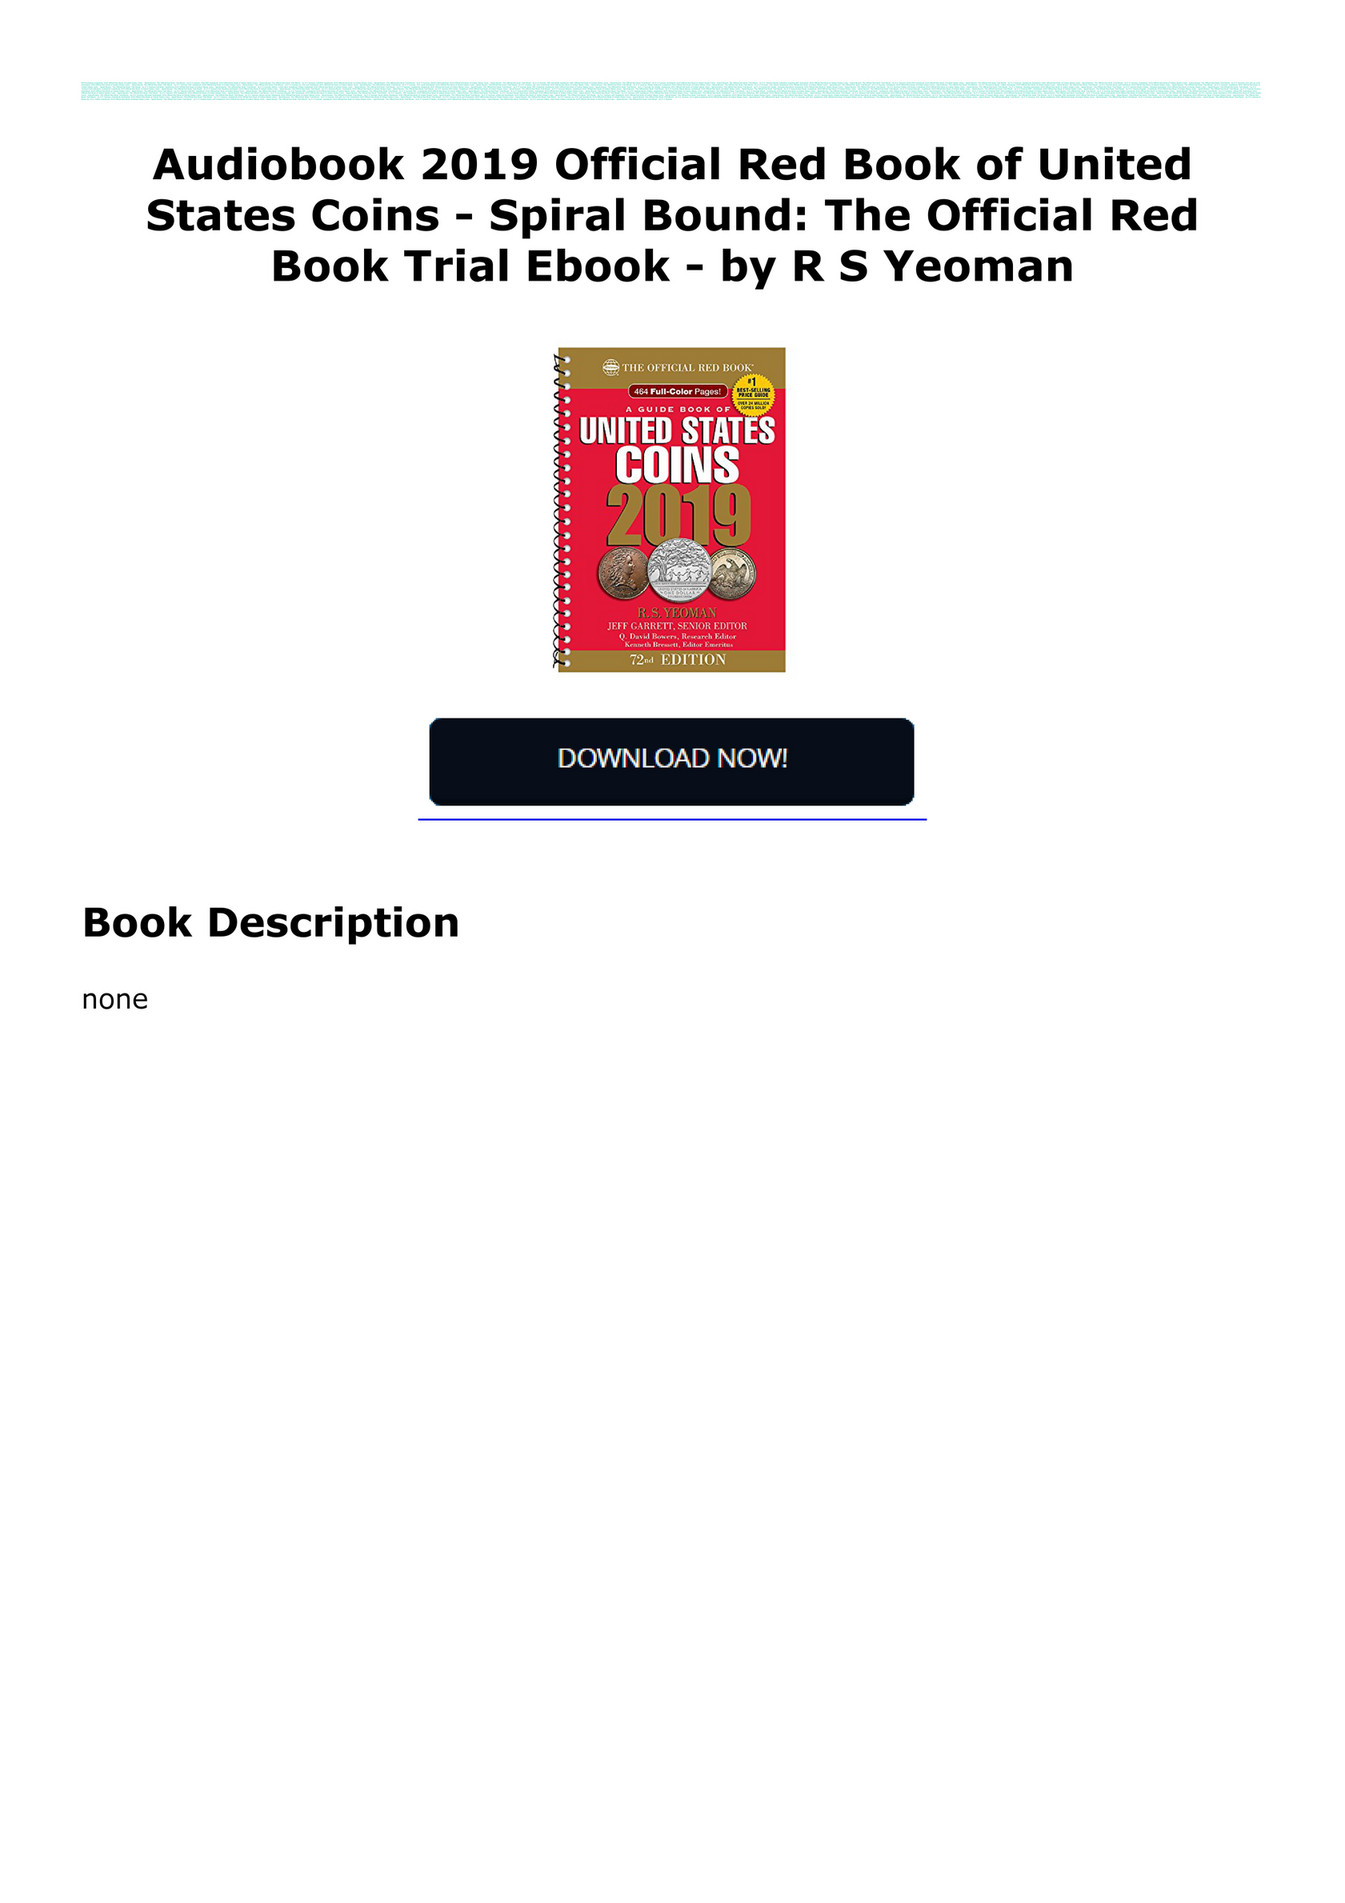 sepsojiknow3w - Audiobook 2019 Official Red Book of United States Coins -  Spiral Bound: The Official Red Book Trial Ebook - by R S Yeoman - Page 1